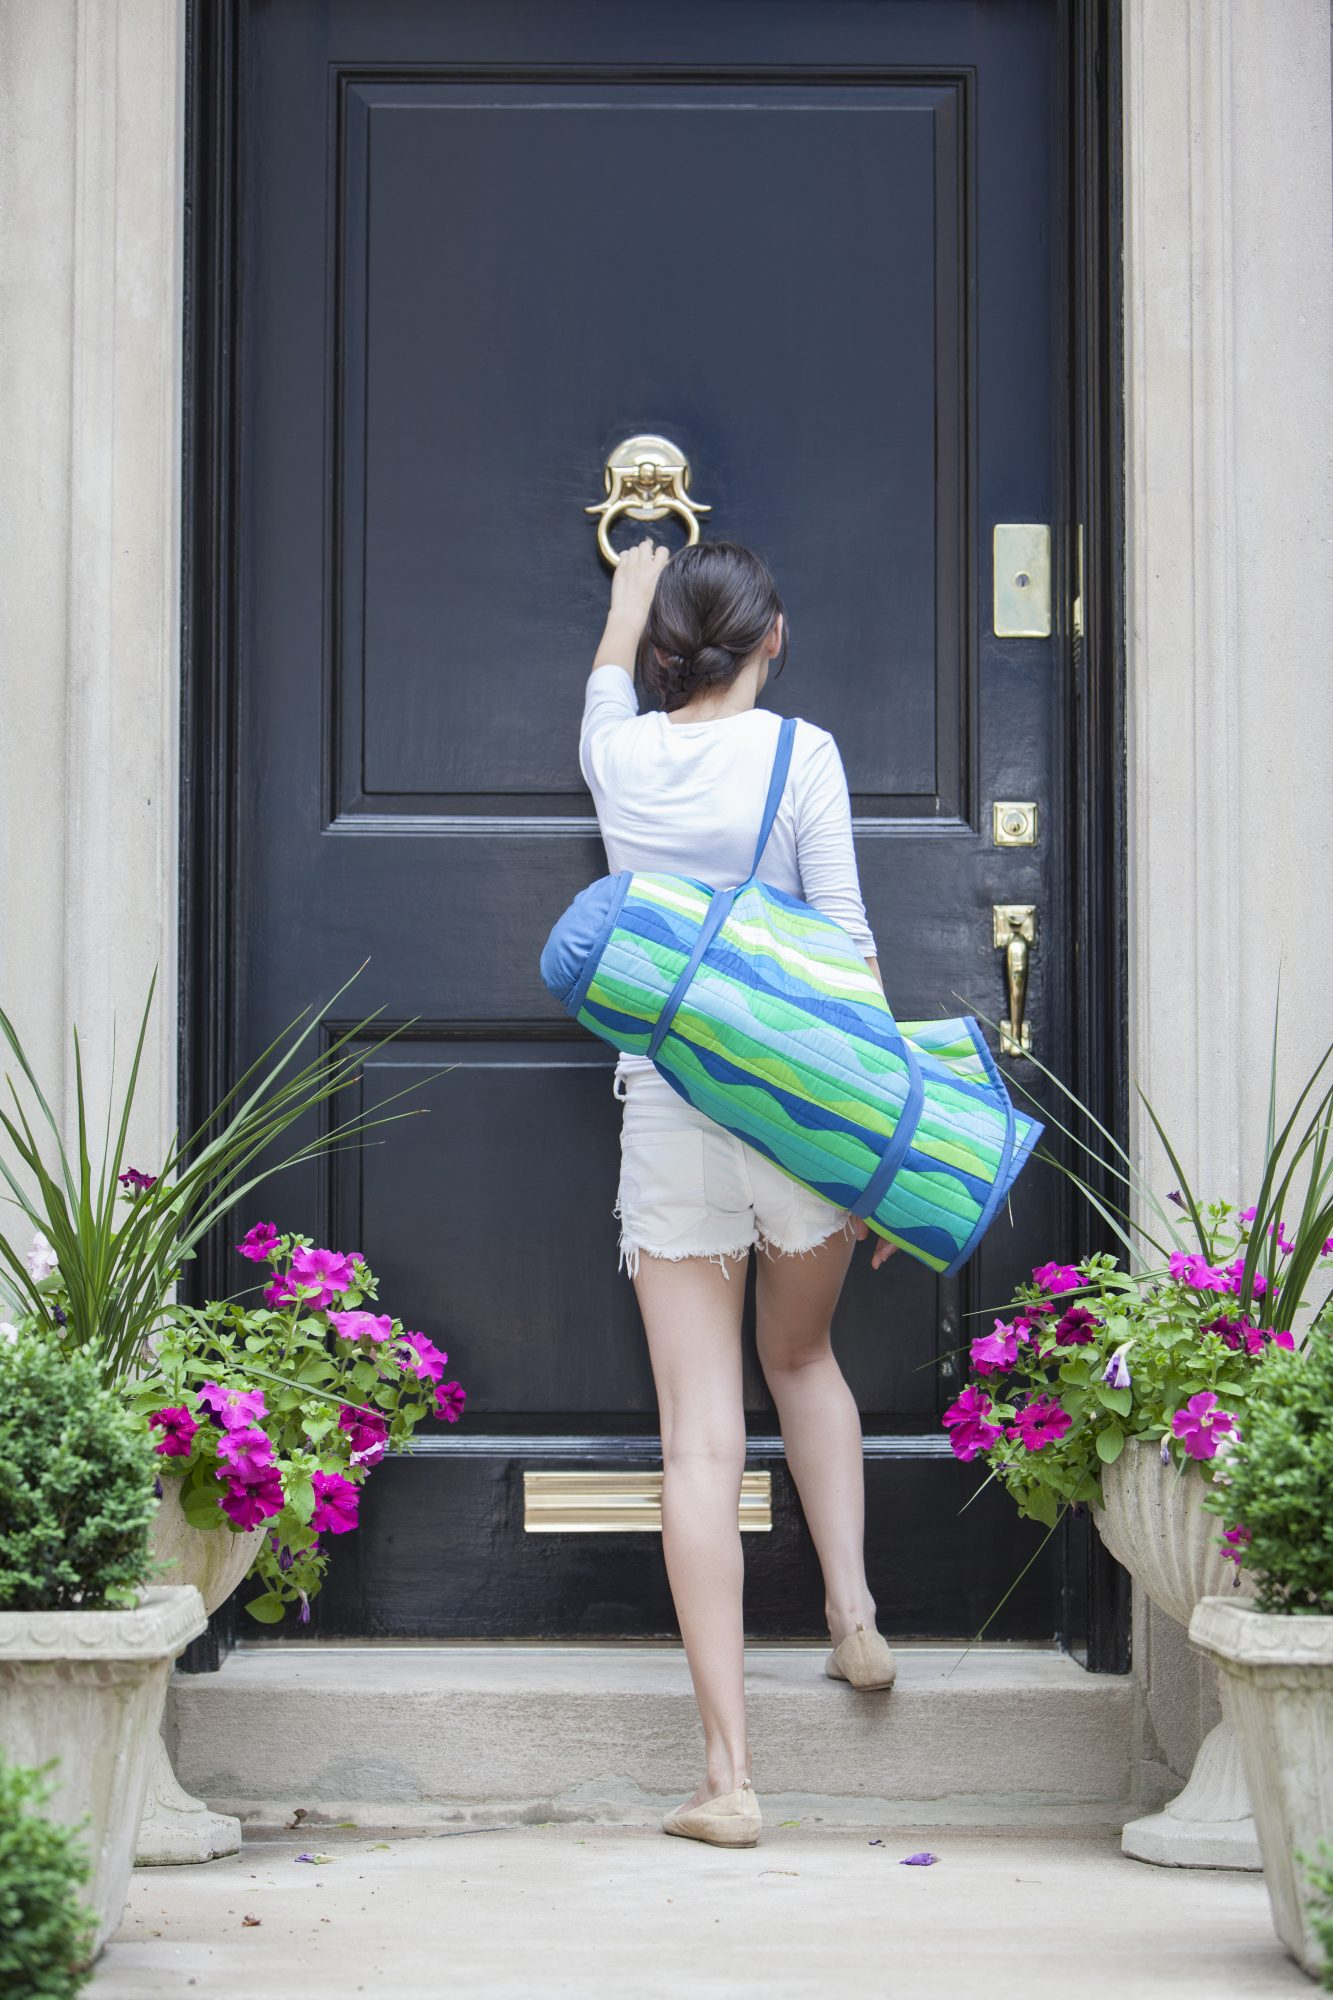 Woman with luggage knocking on a door